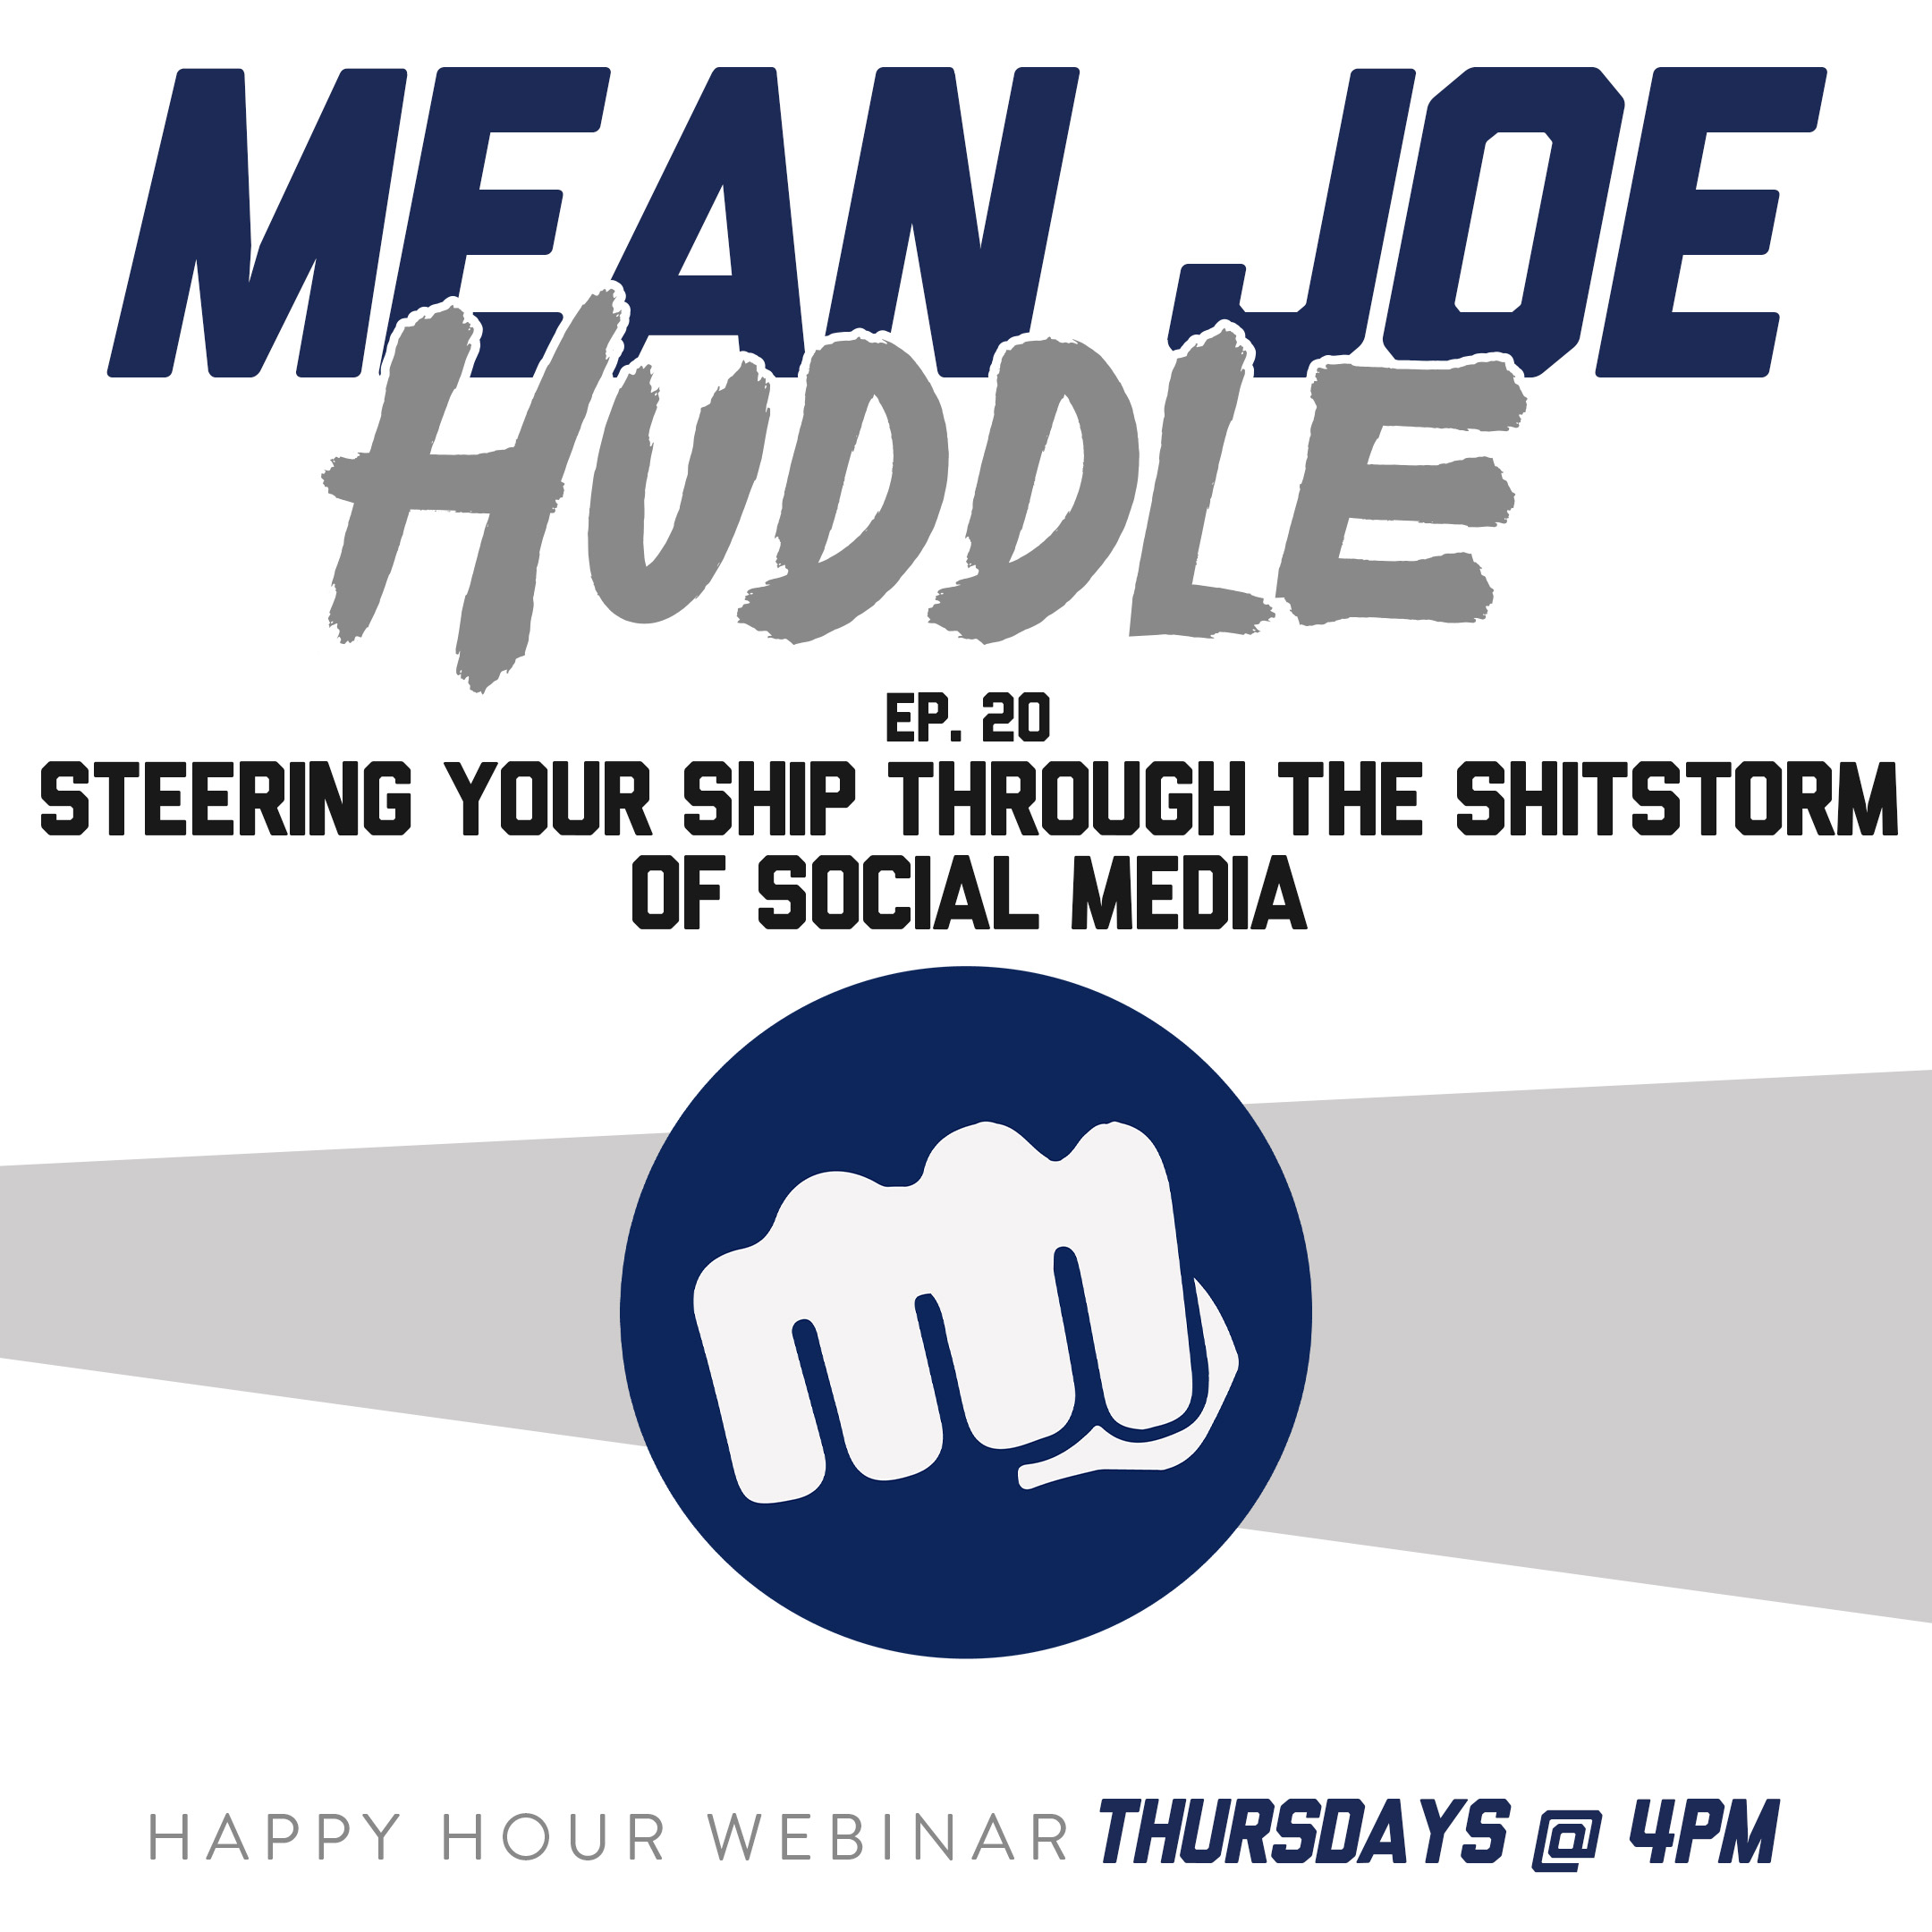 Mean Joe Huddle Ep. 20 - Steering Your Ship Through the Shitstorm of Social Media